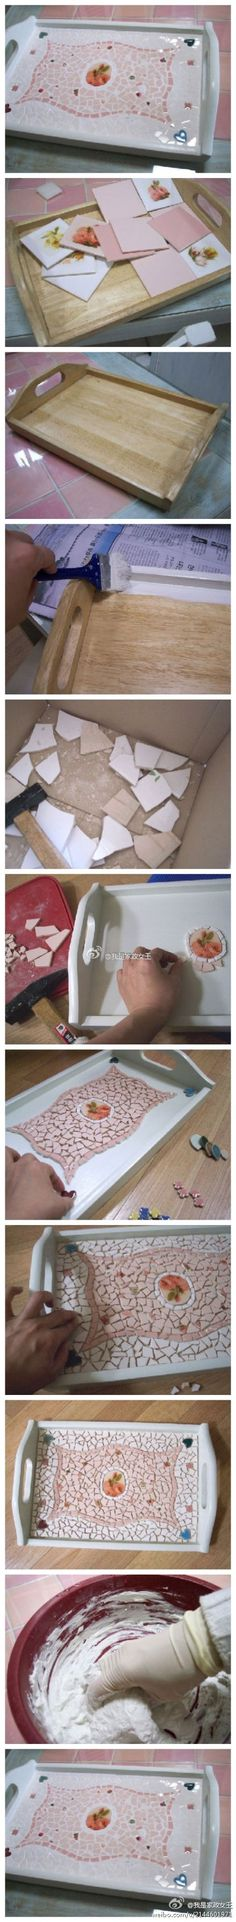 DIY Mosaic Tiles Tray Pictures, Photos, and Images for Facebook, Tumblr, Pinterest, and Twitter